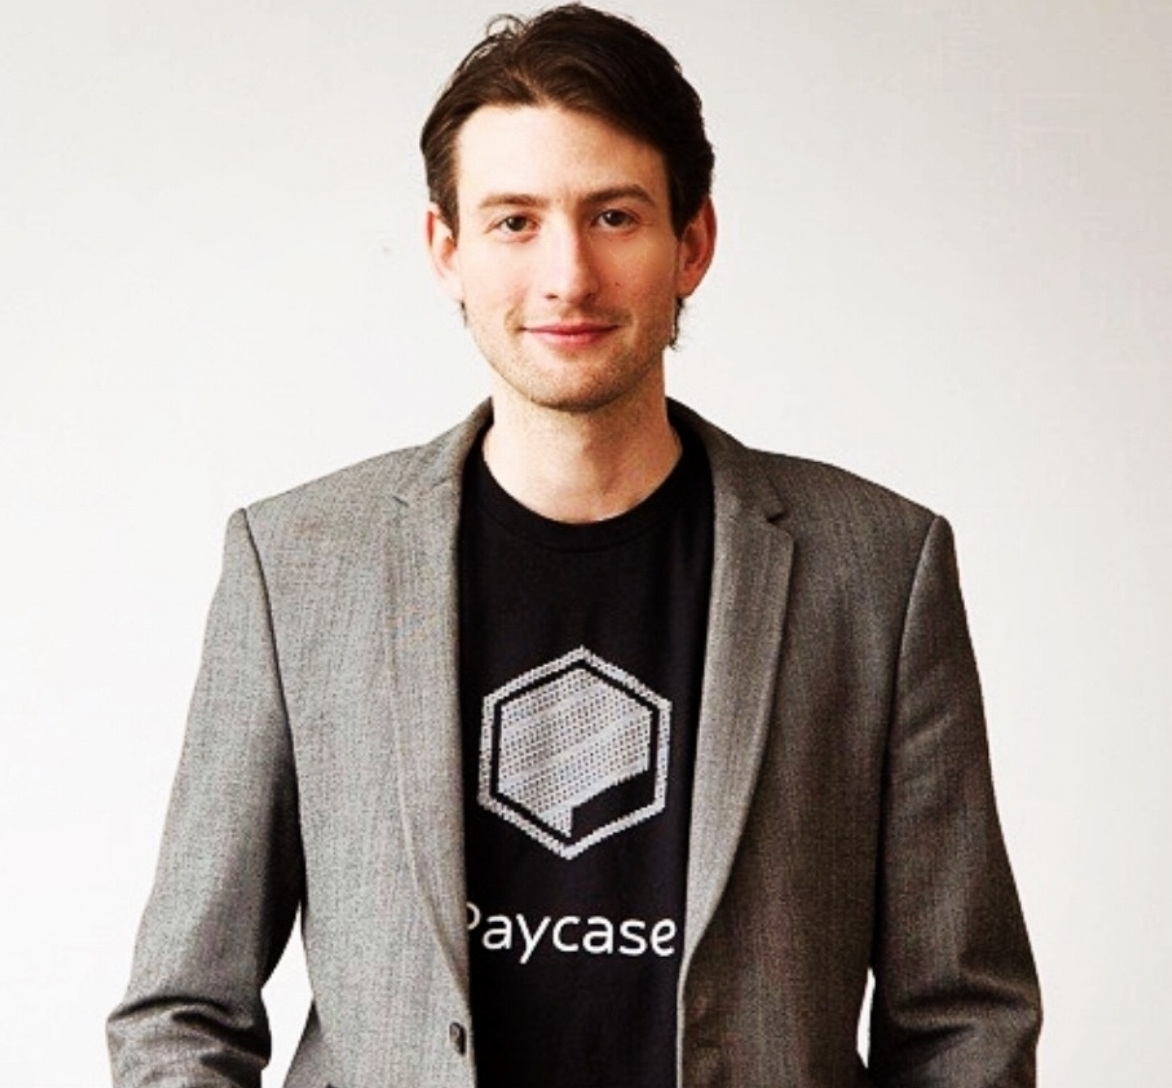 Joseph Weinberg, Co-founder & CEO, Paycase